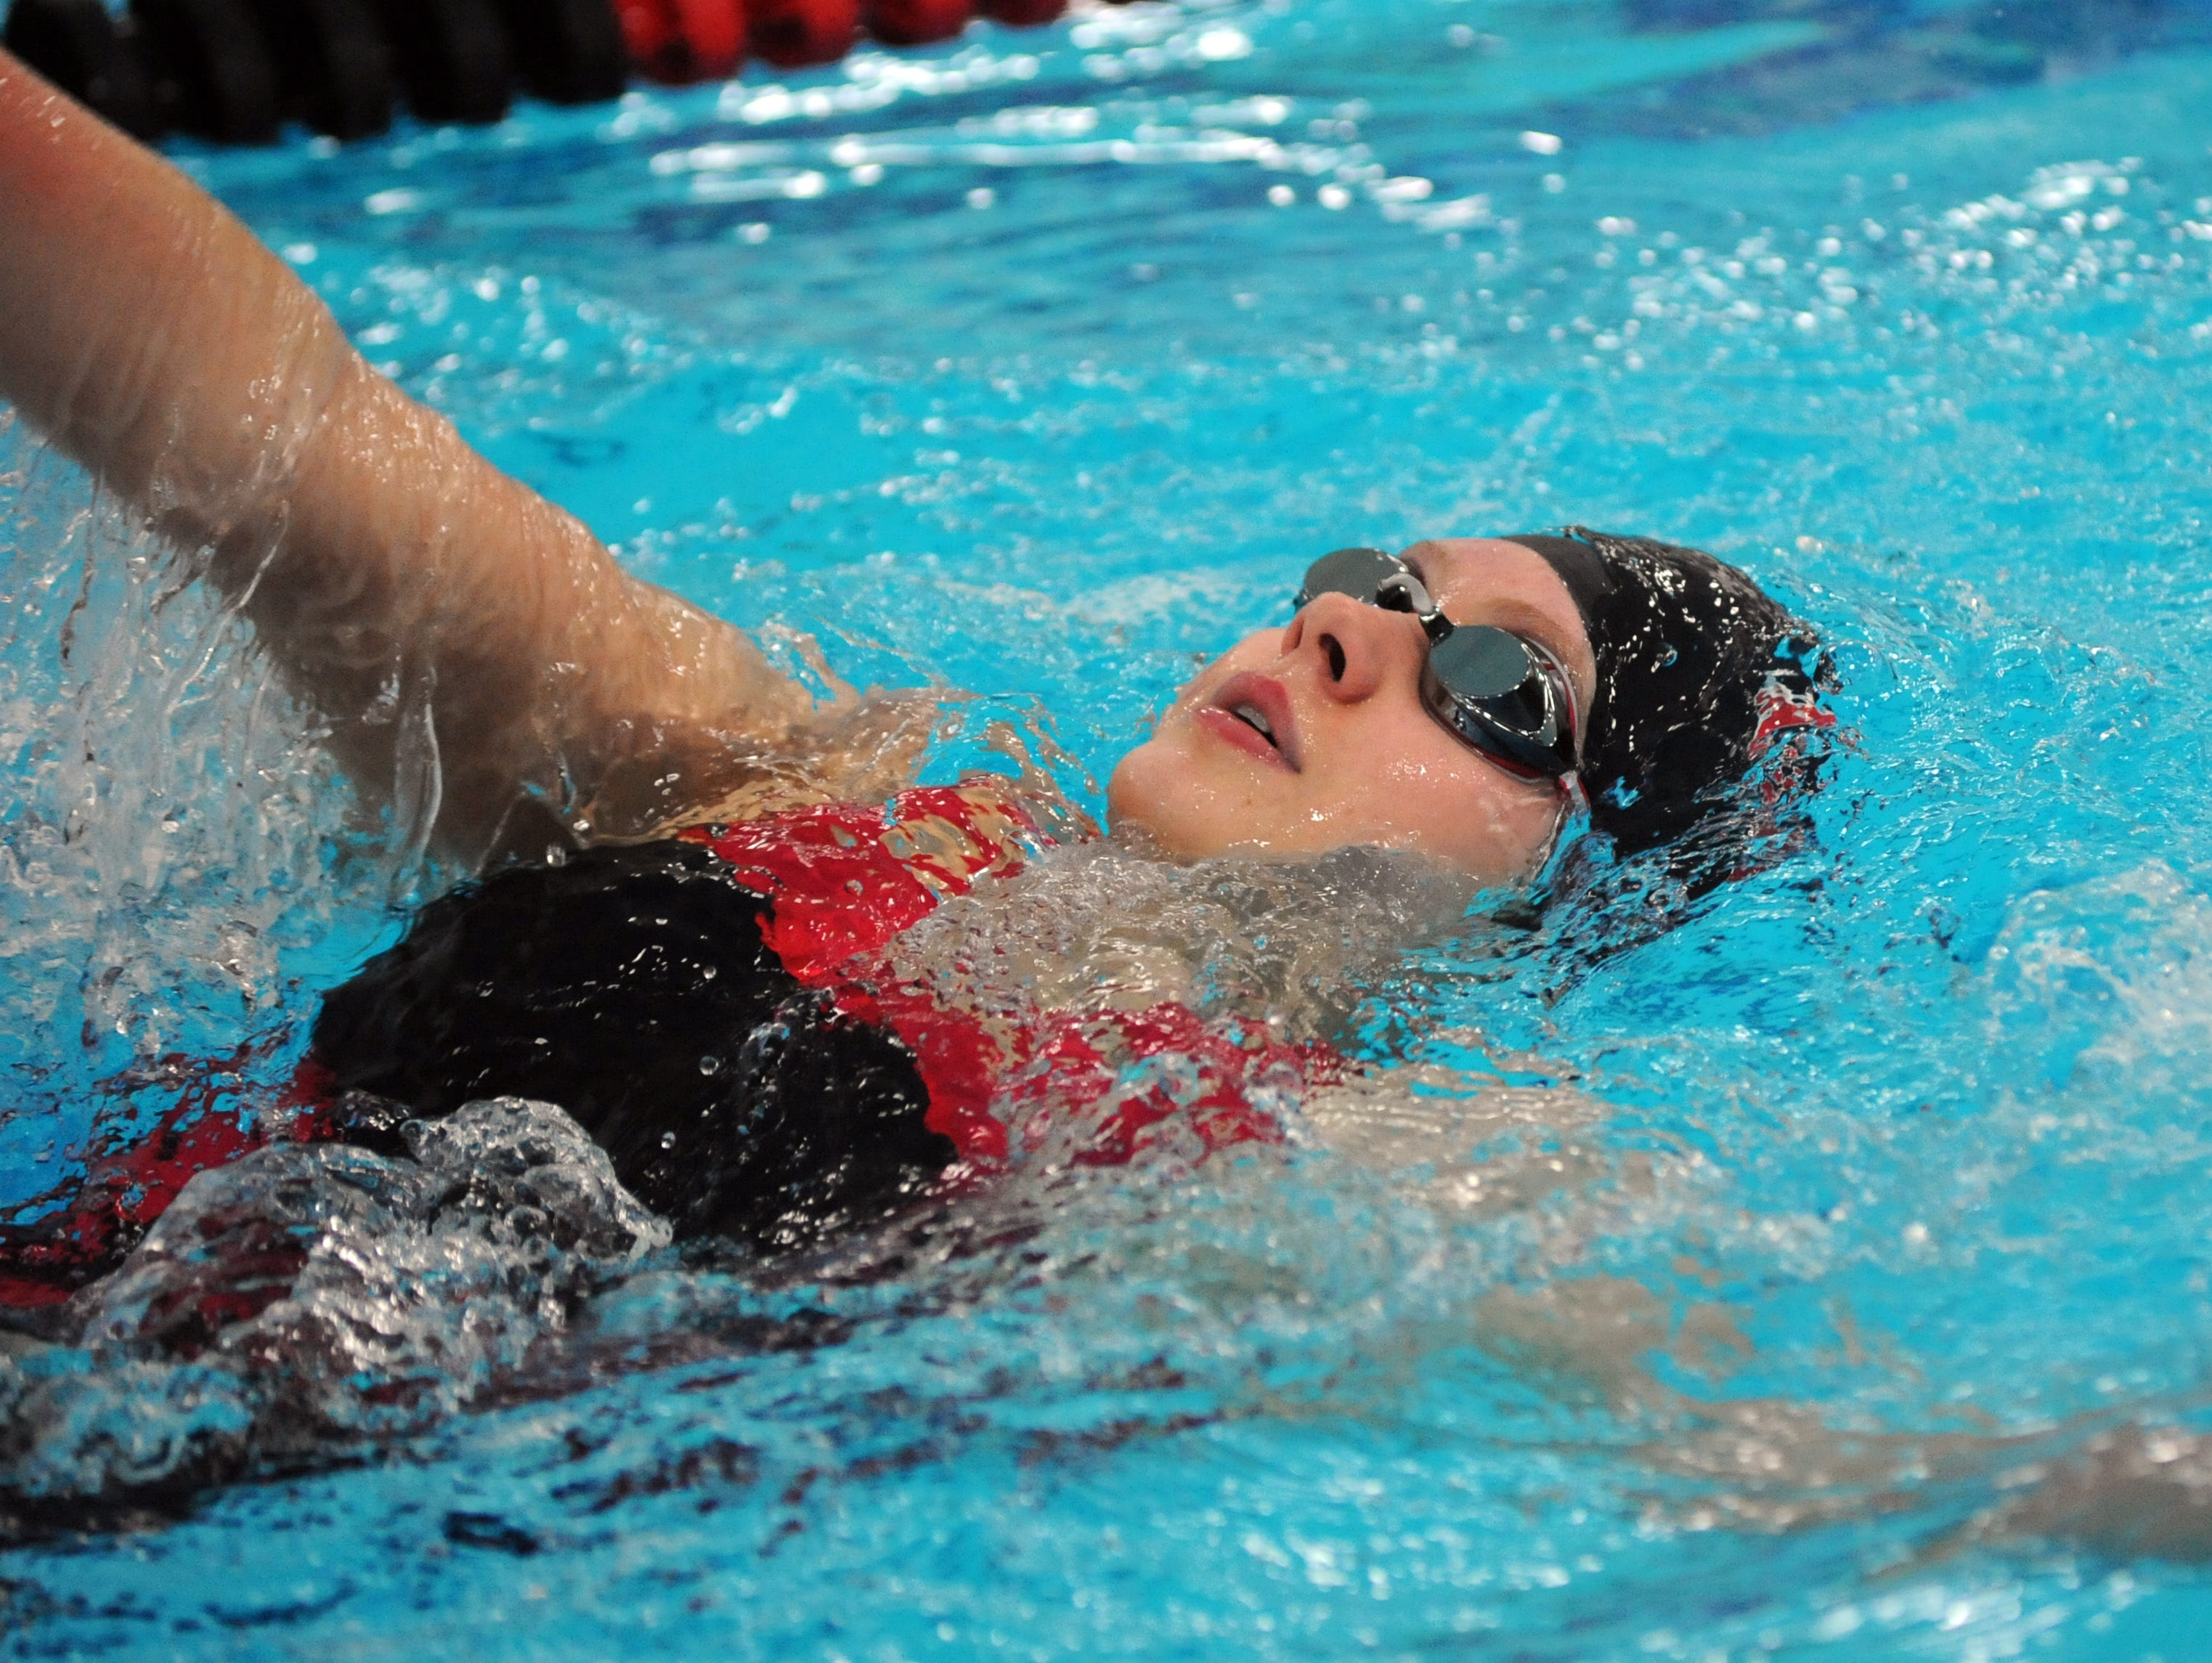 Coshocton's Georgia Brown competes in the 200 meter individual medley Saturday during the 2015 Coshocton Invitational at Coshocton High School.